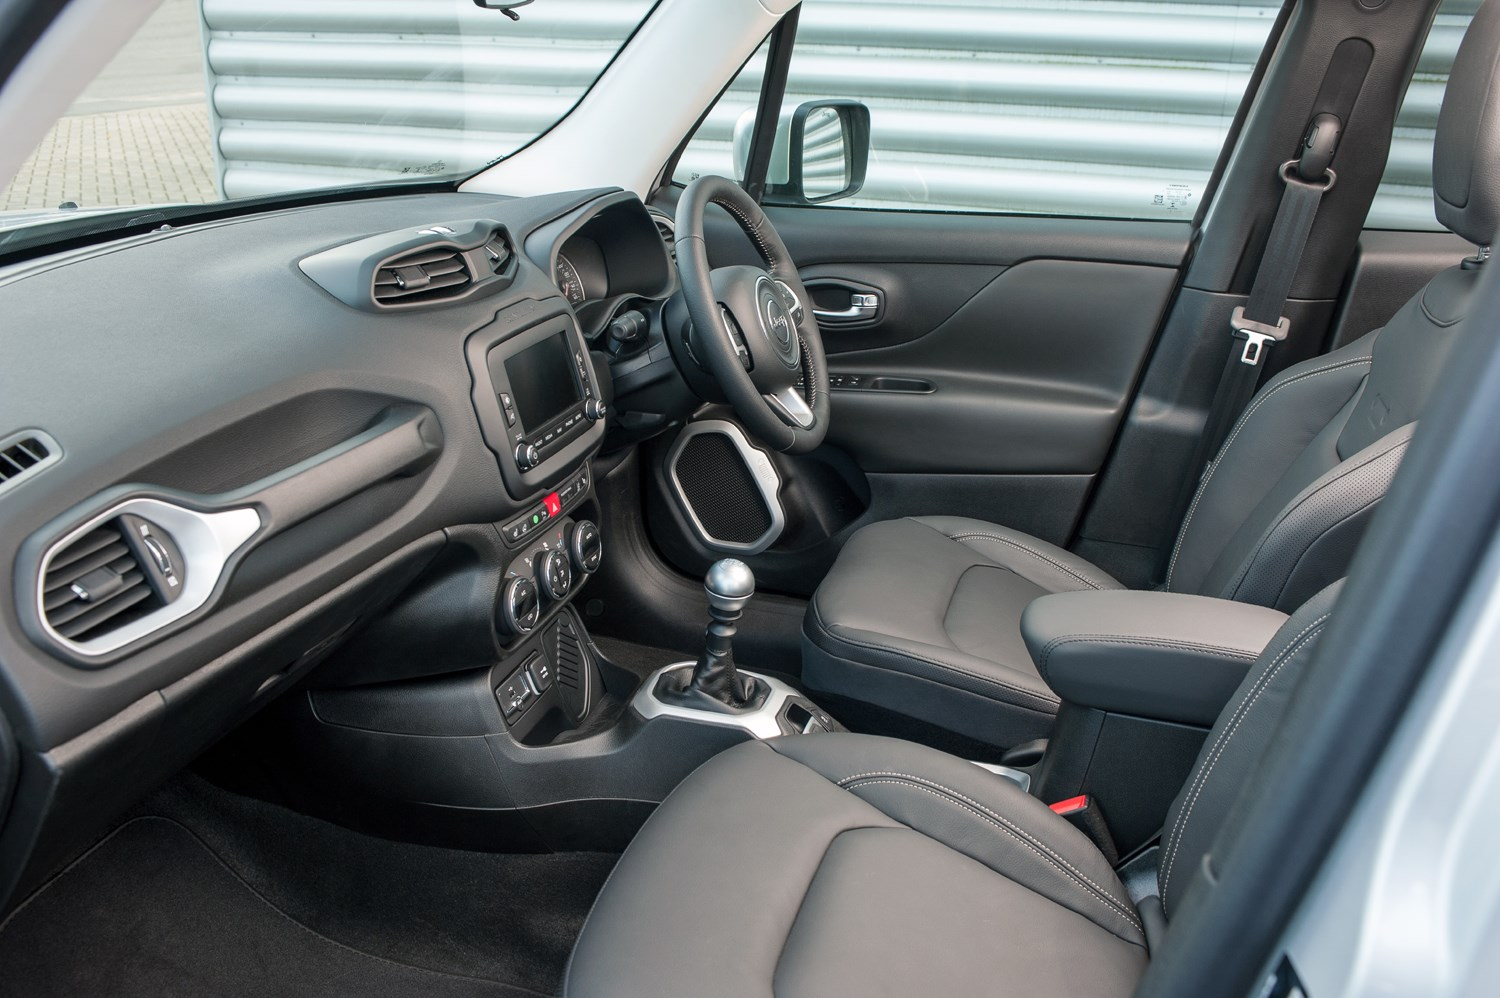 Jeep renegade 4x4 review 2015 parkers for Interior jeep renegade